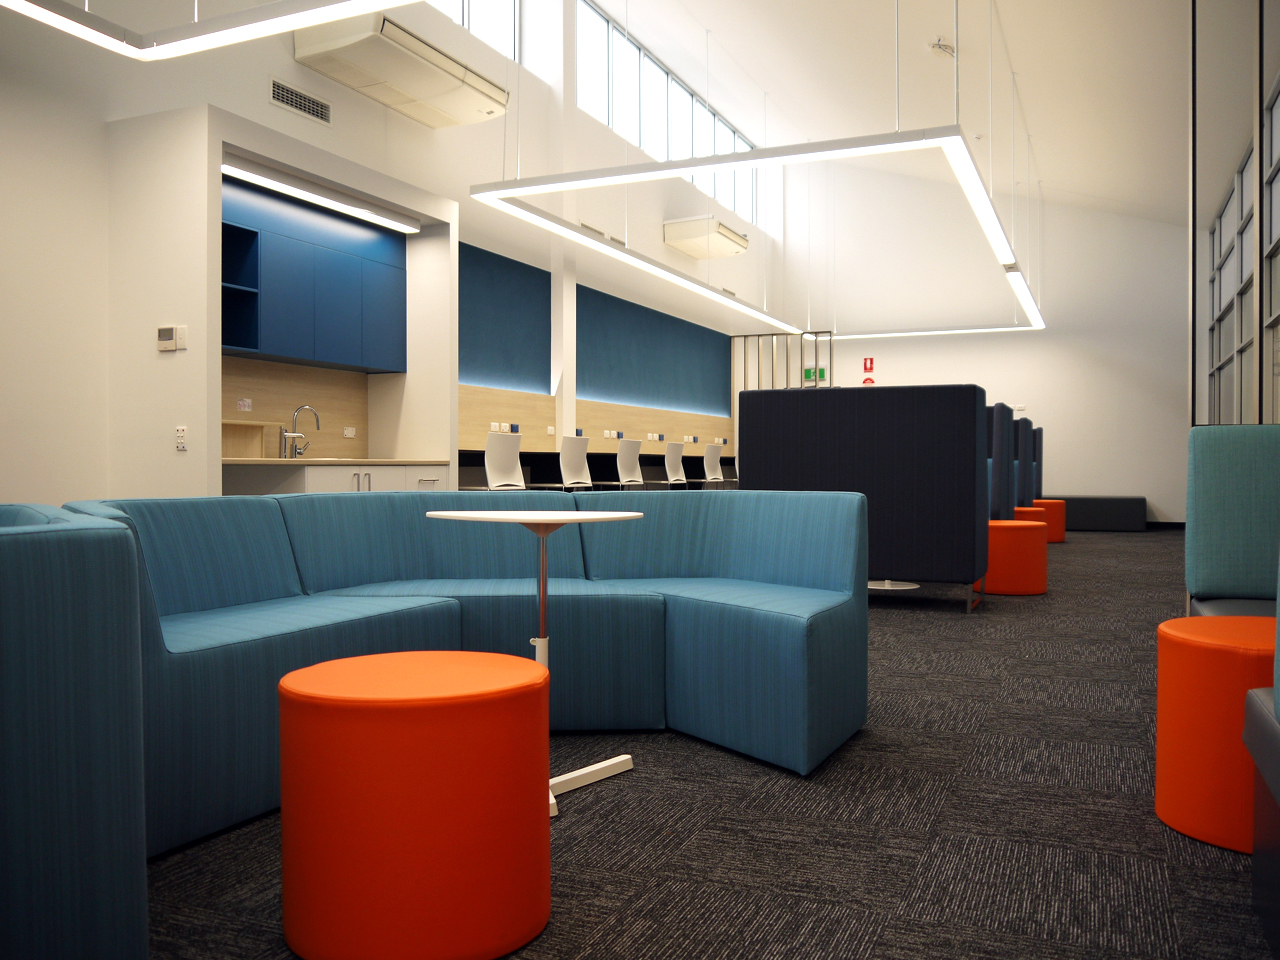 Wirreanda Senior School   Senior Breakout Space   Services: Trinamic Contractor: Inca Constructions Photographer: W+S  Refurbished space providing various individual and group study settings and opportunities for senior school students within a light filled open plan facility.